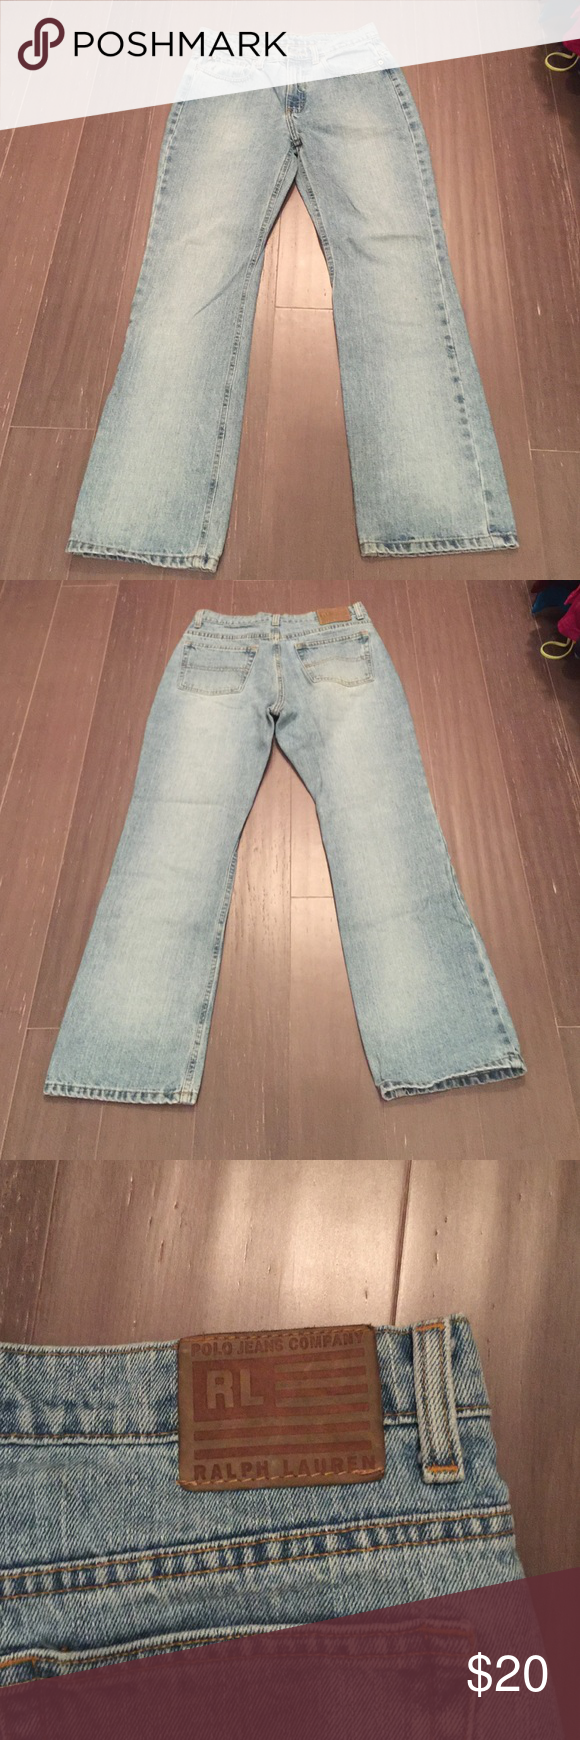 "Ralph Lauren Polo Jeans Ralph Lauren Polo Jeans. Worn a few times. Still in decent condition. Length is 29"".  Smoke free home but we do love our pets. Polo by Ralph Lauren Jeans Boot Cut"